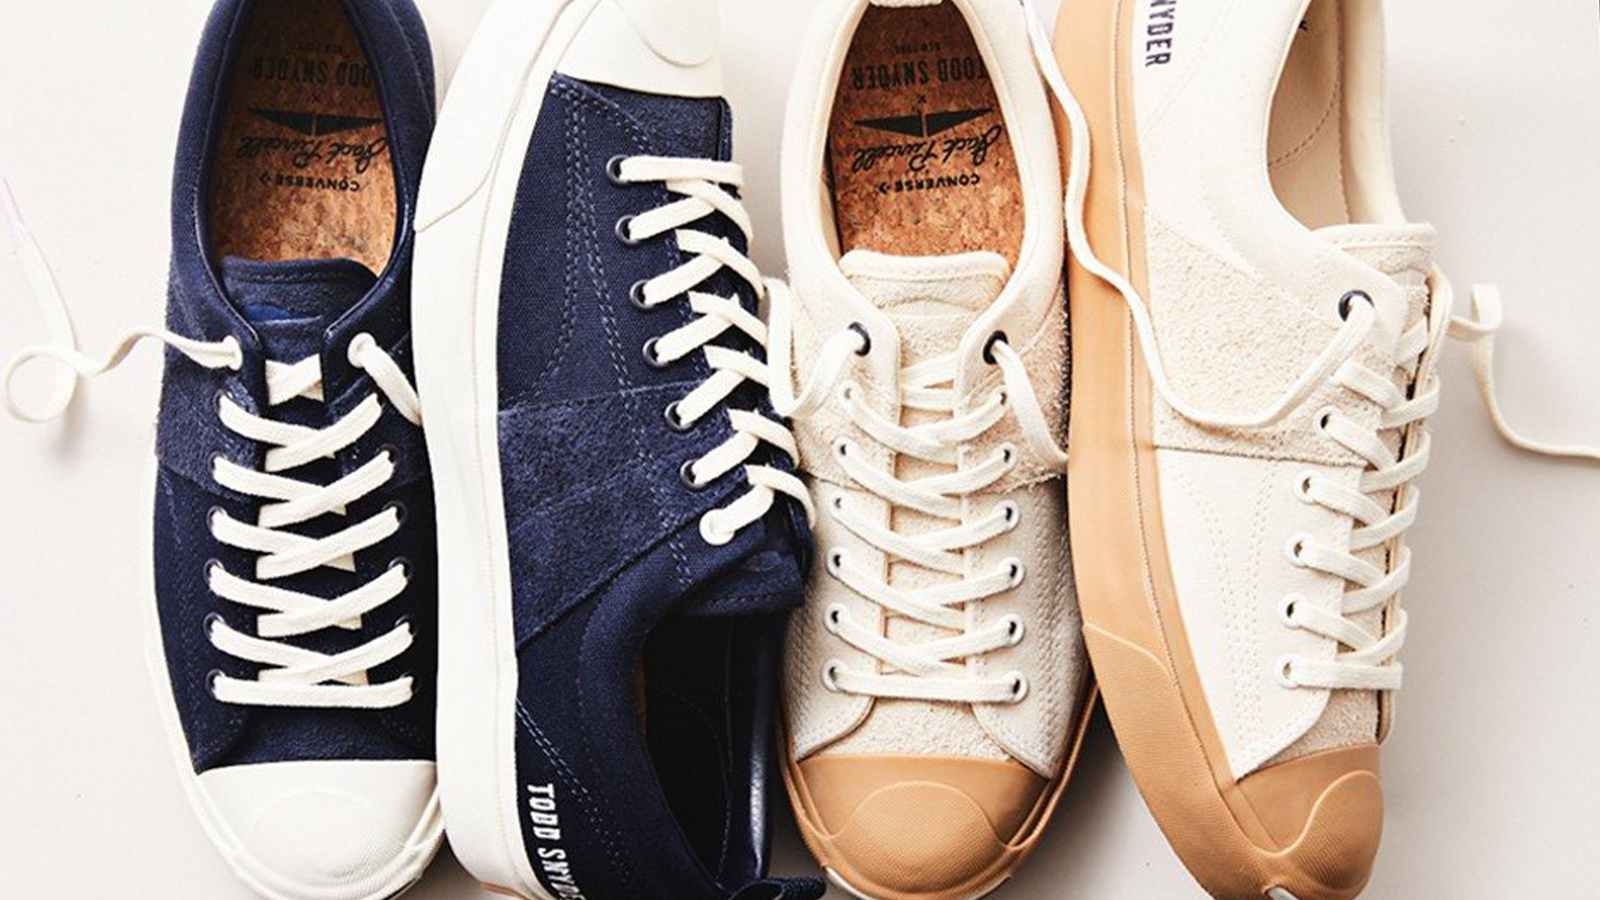 Todd Snyder x Converse Jack Purcell Collection